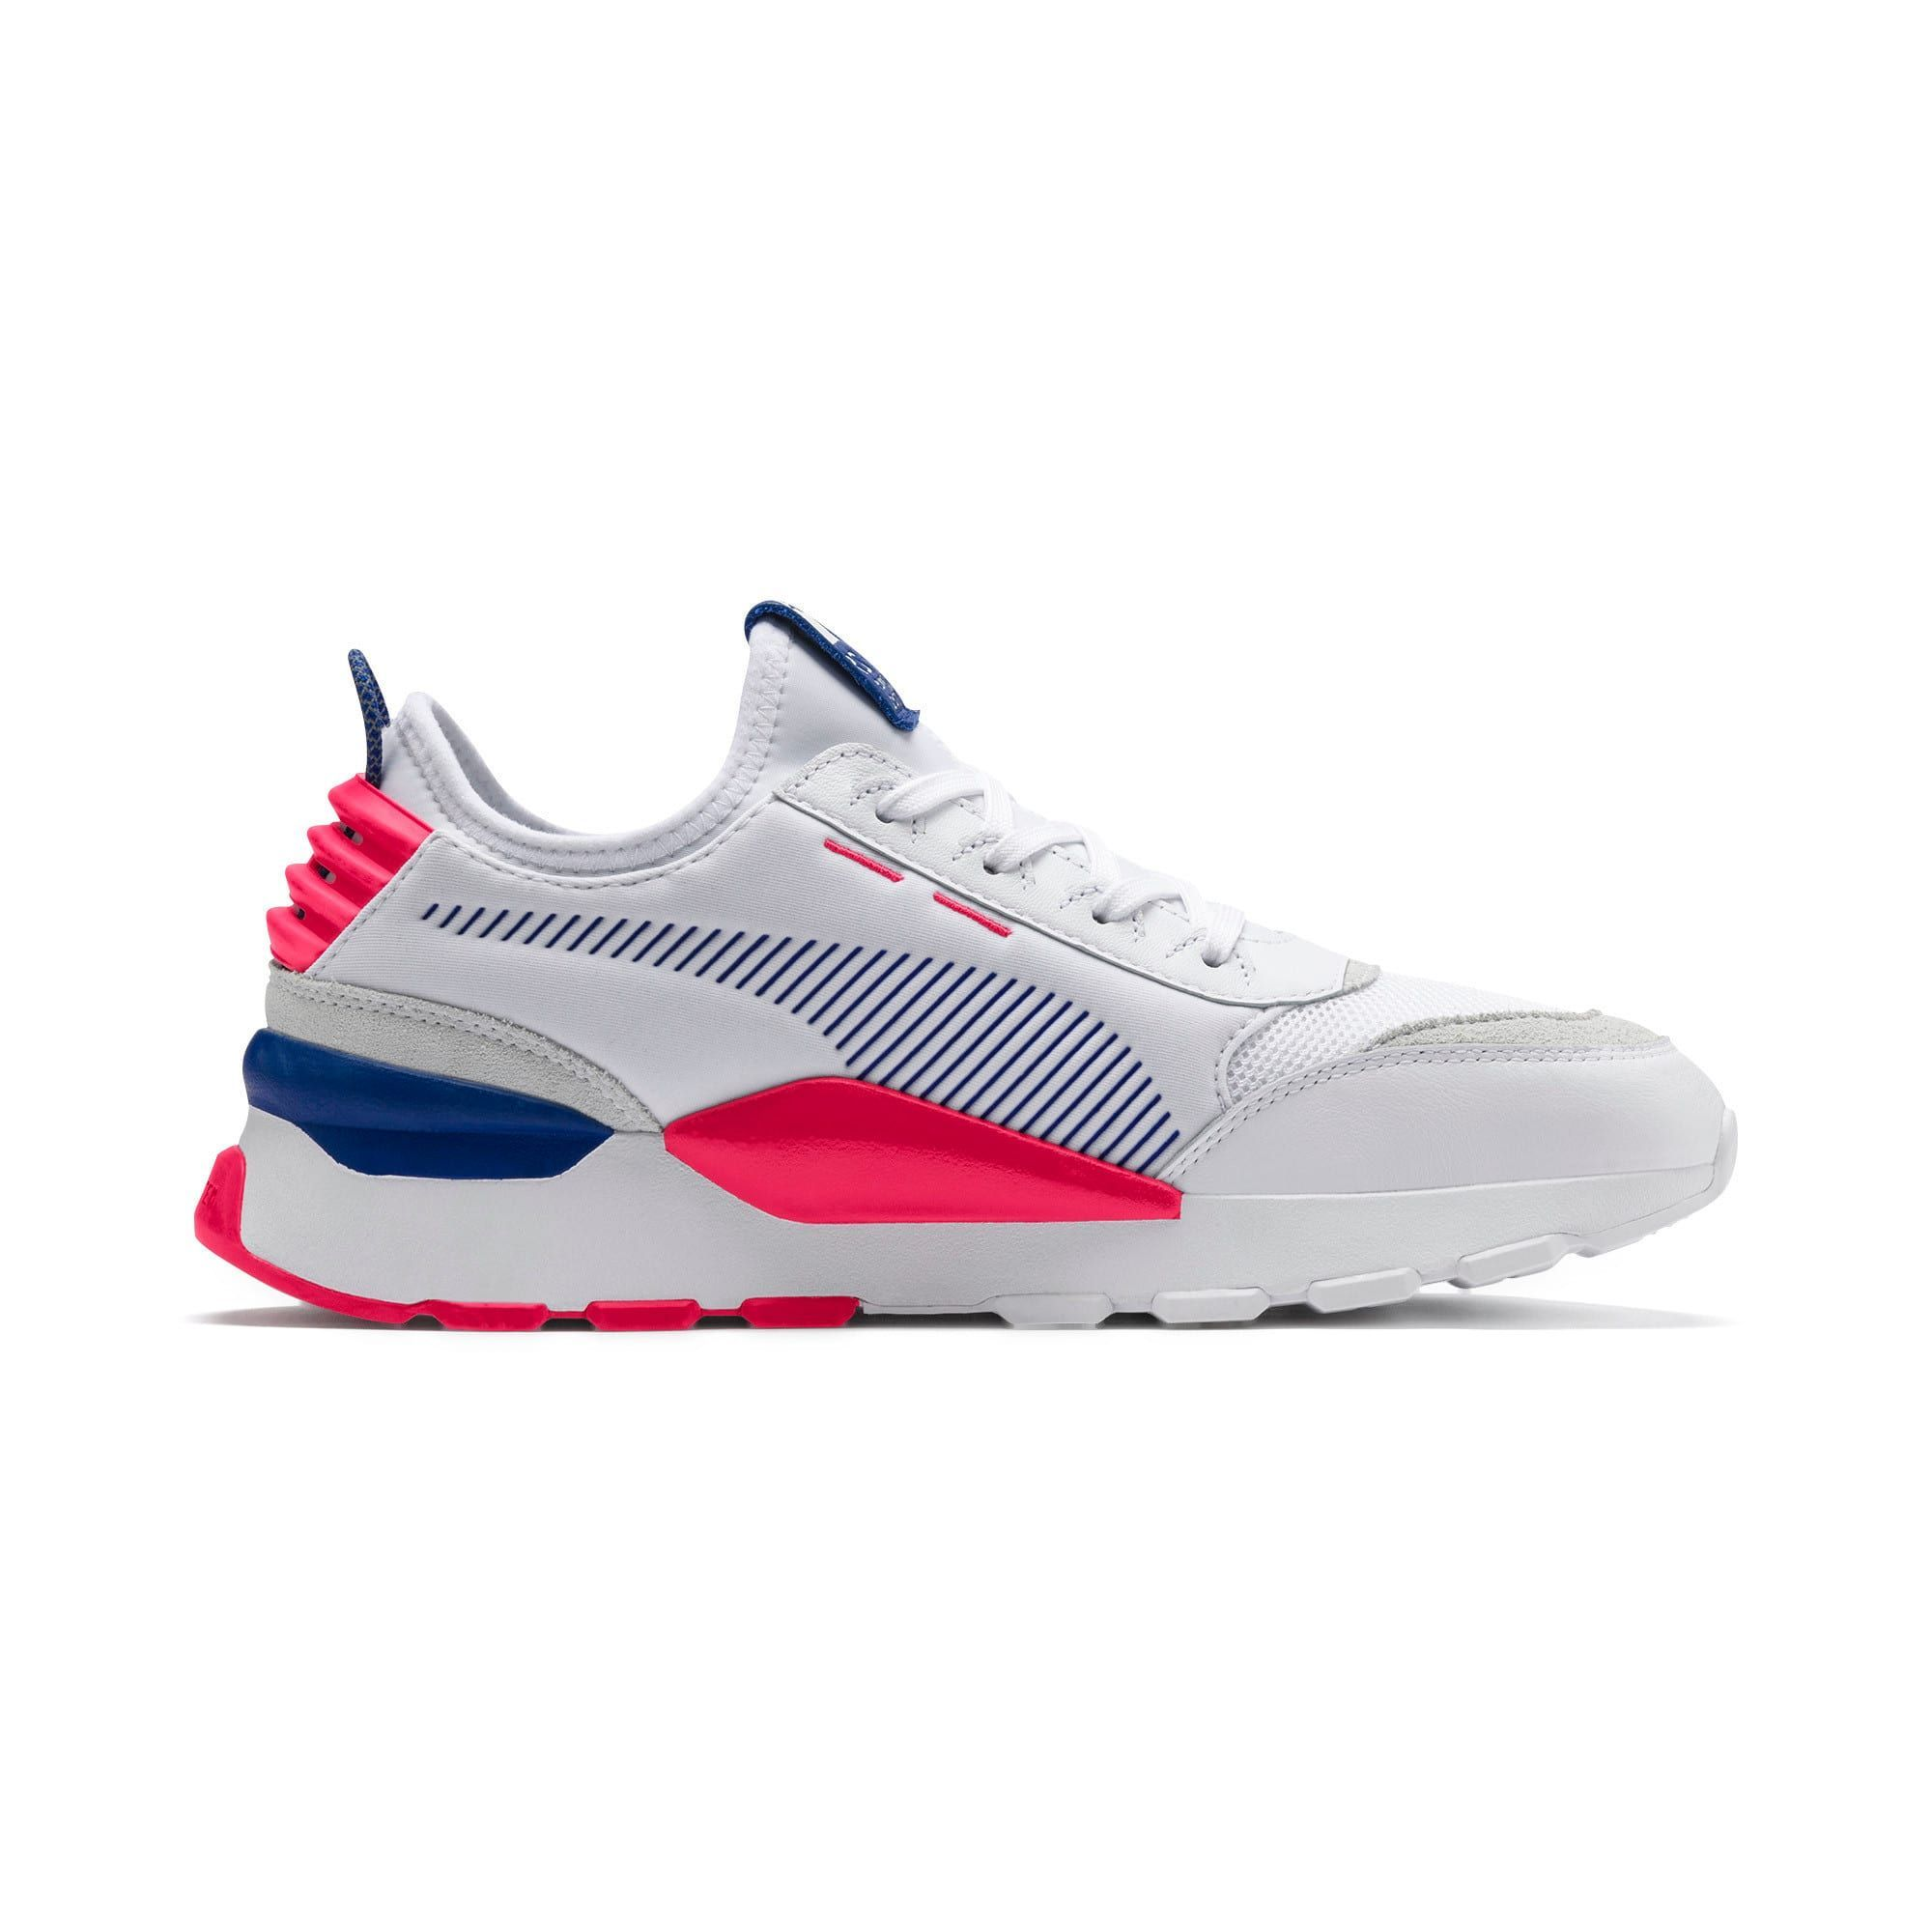 RS-0 Core Trainers | Pumas shoes, Puma, Sneakers